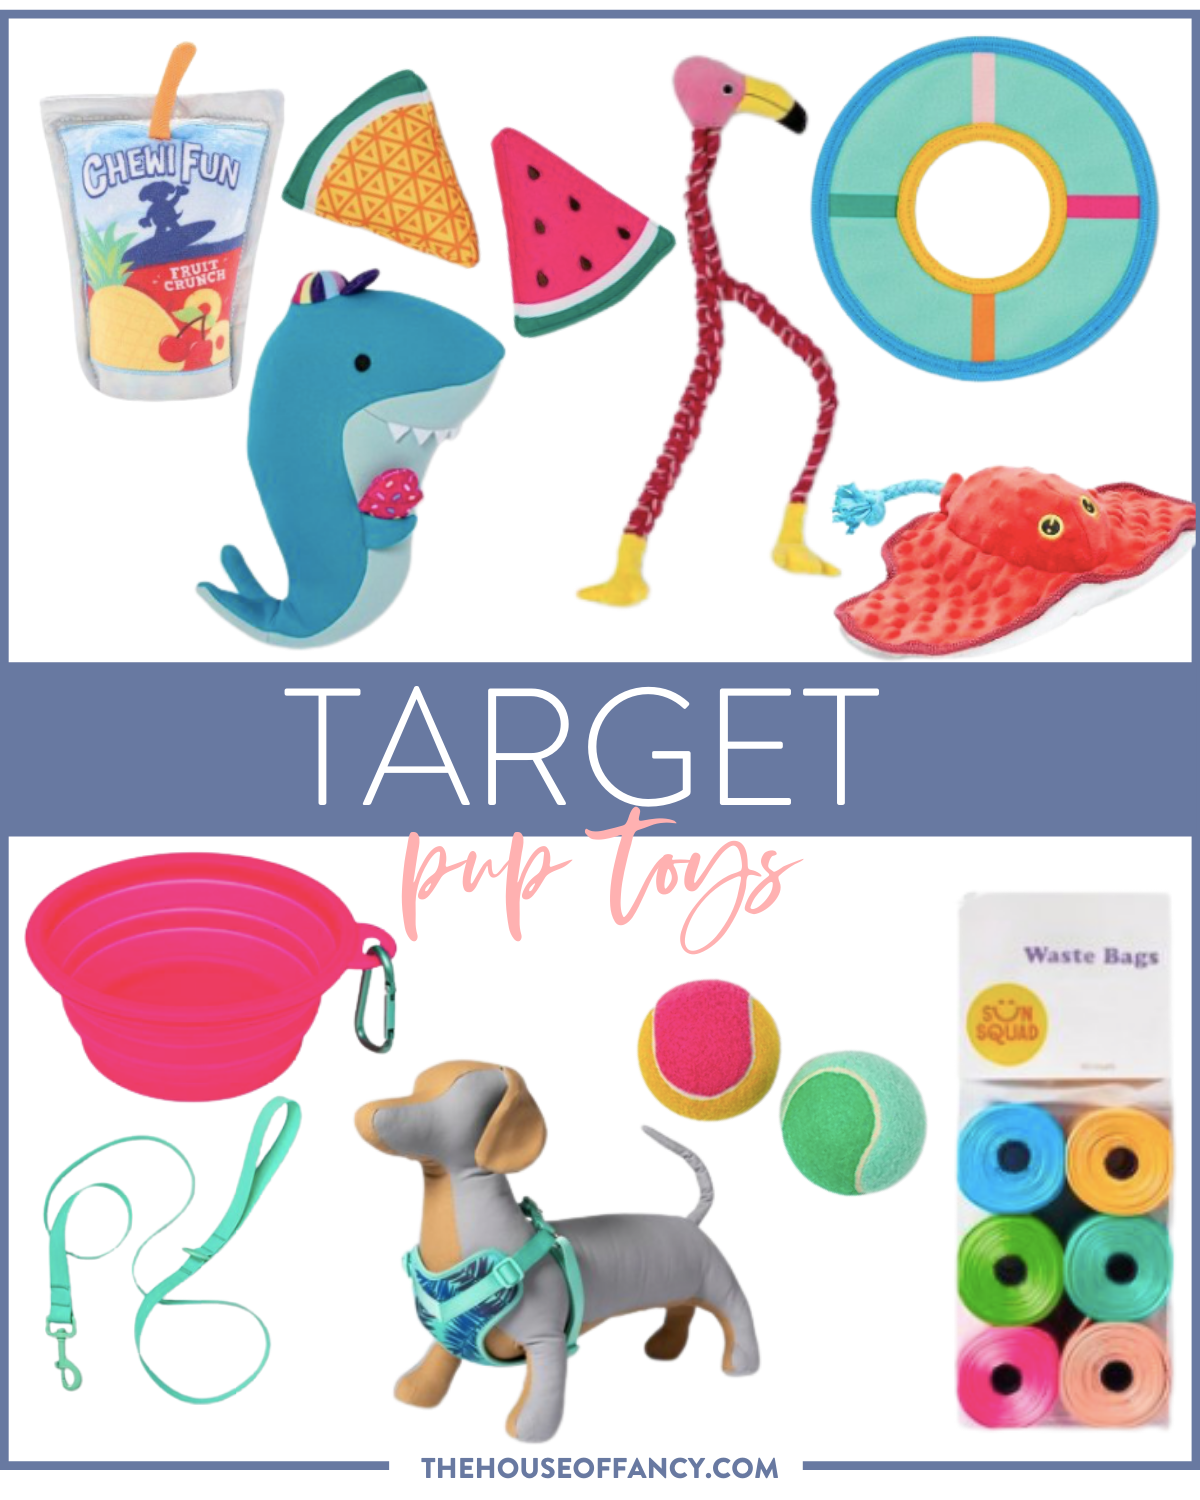 Target Dog Toys by popular Houston lifestyle blog, The House of Fancy: collage image of a shark do toy, sting ray dog toy, flamingo rope toy, watermelon dog toys, ChewiFun dog toy, pool float dog toy, travel water bowl, mint green dog leash, tennis balls, sun squad waste bags, and a dog harness.